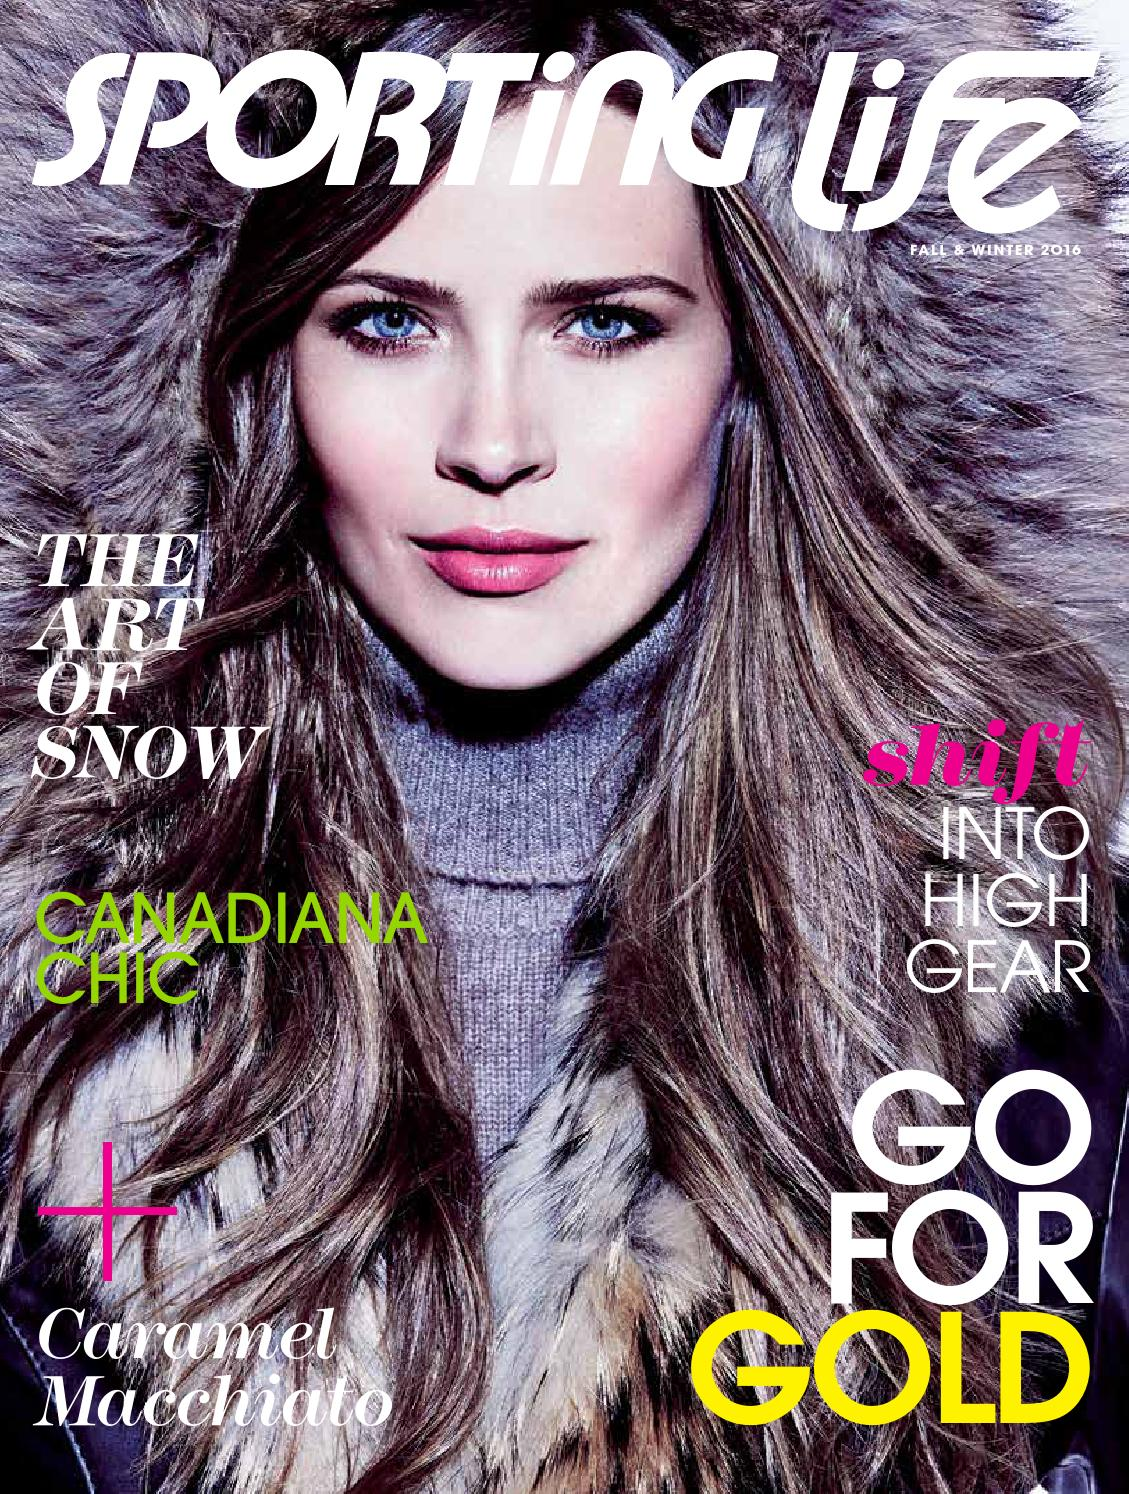 Canada Goose hats replica official - Sporting Life Fall/Winter 2014/15 by S-Media - issuu